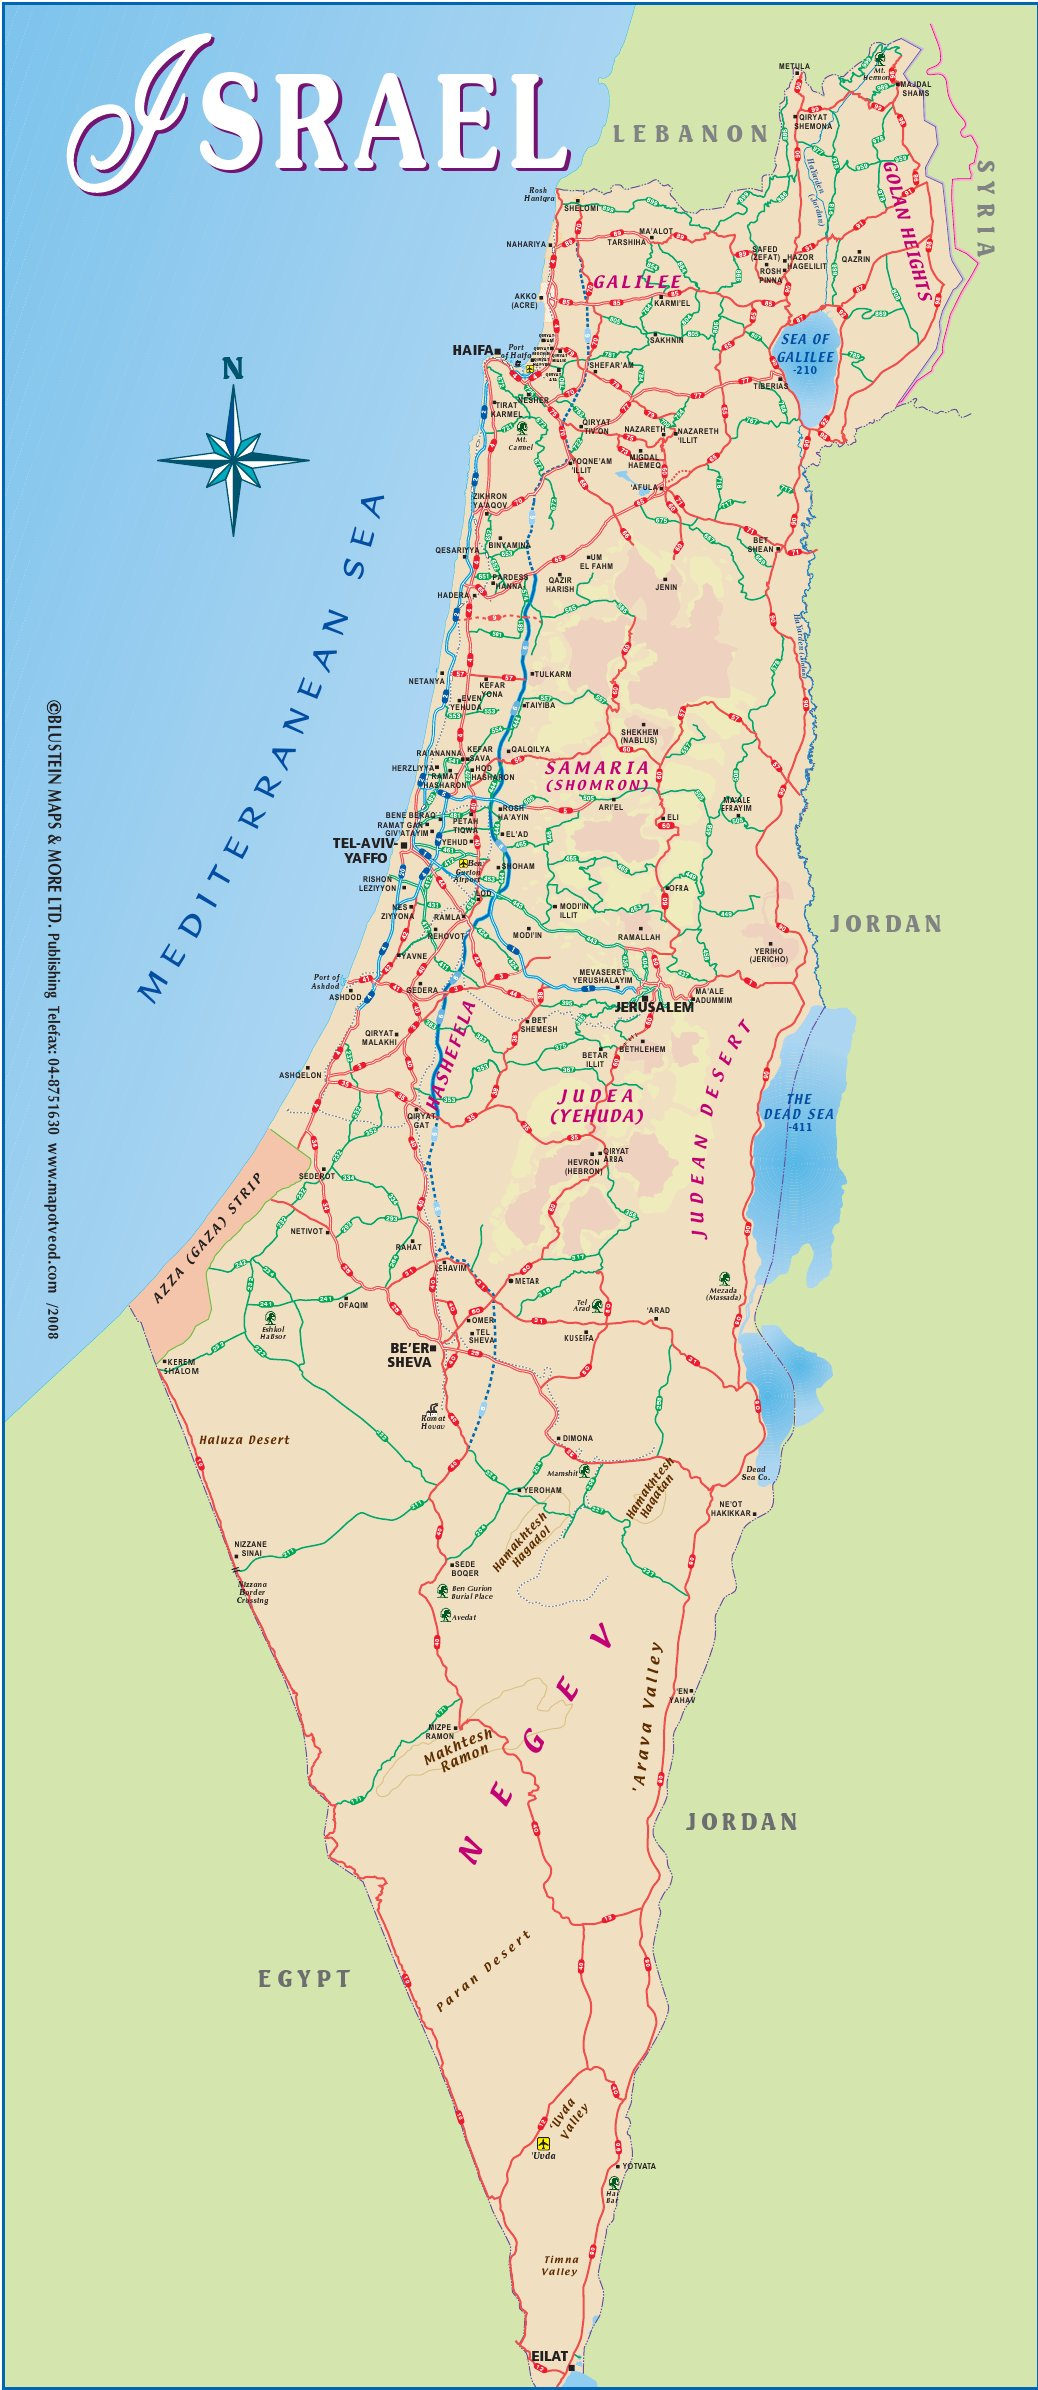 israel touristische karte – israel tourist map . maps update  israel tourist map – tourist map of israel